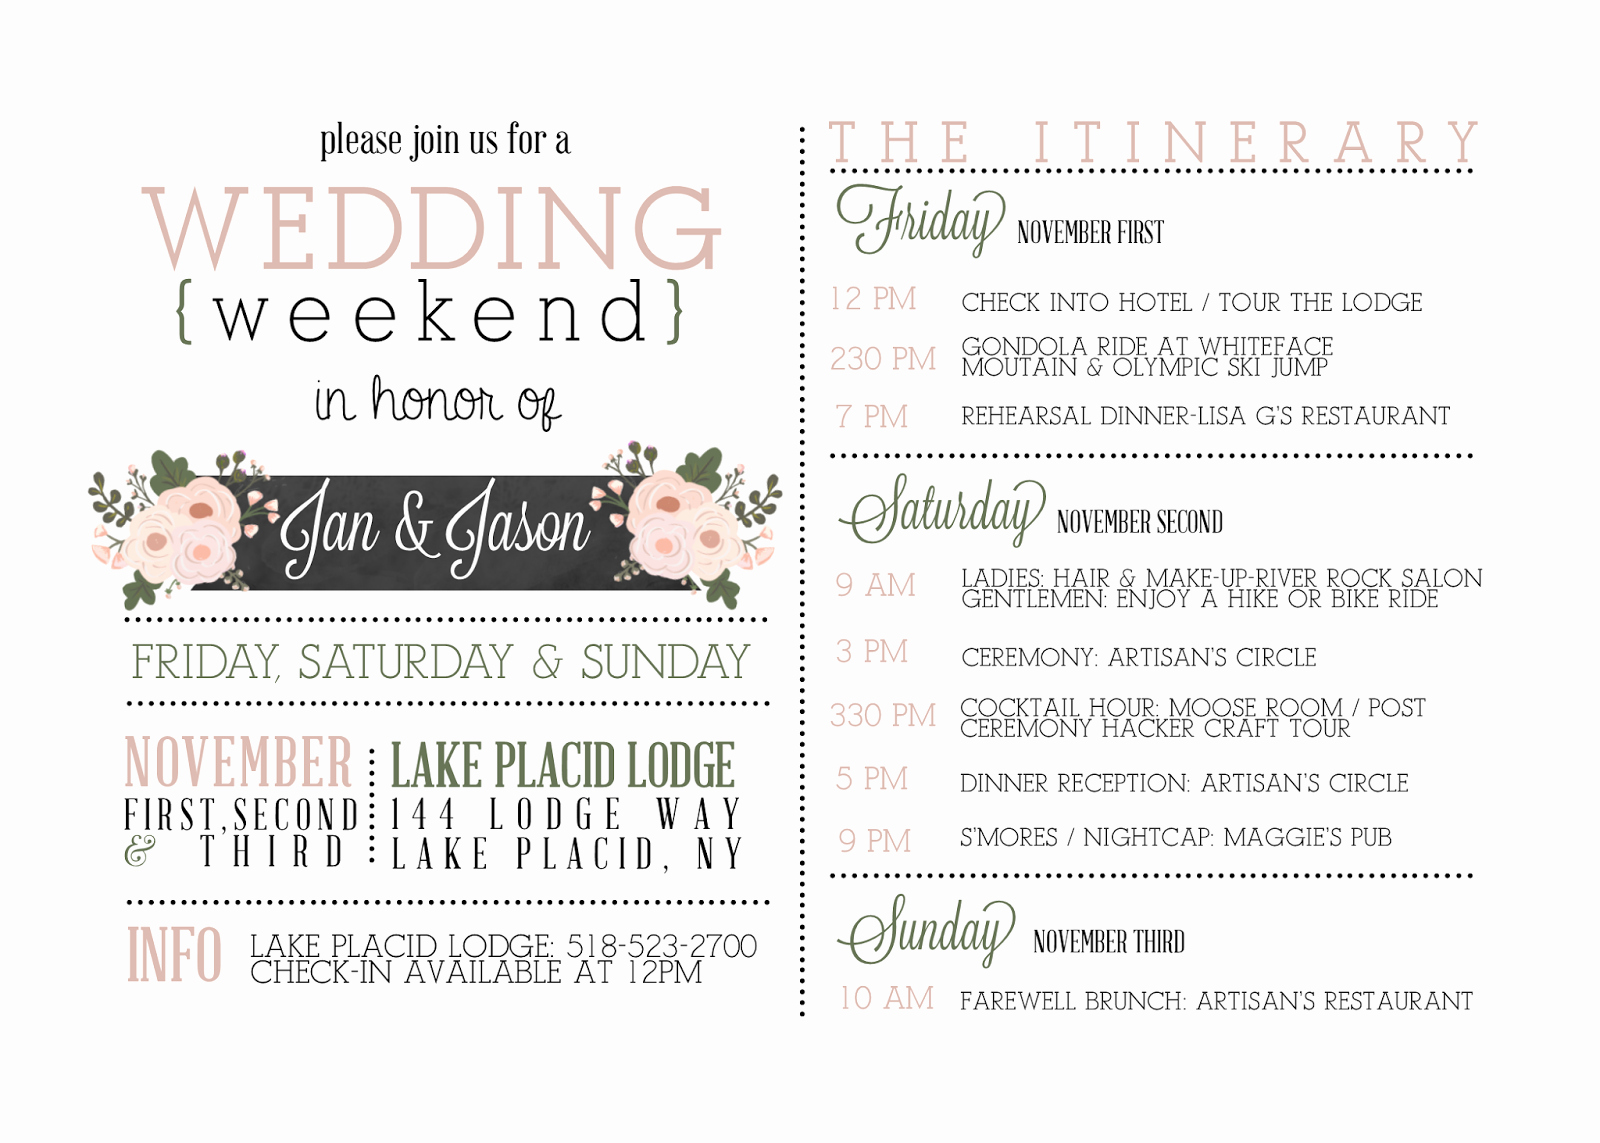 Wedding Itinerary Templates Free Luxury Sugar Queens Weekend Itinerary Invites